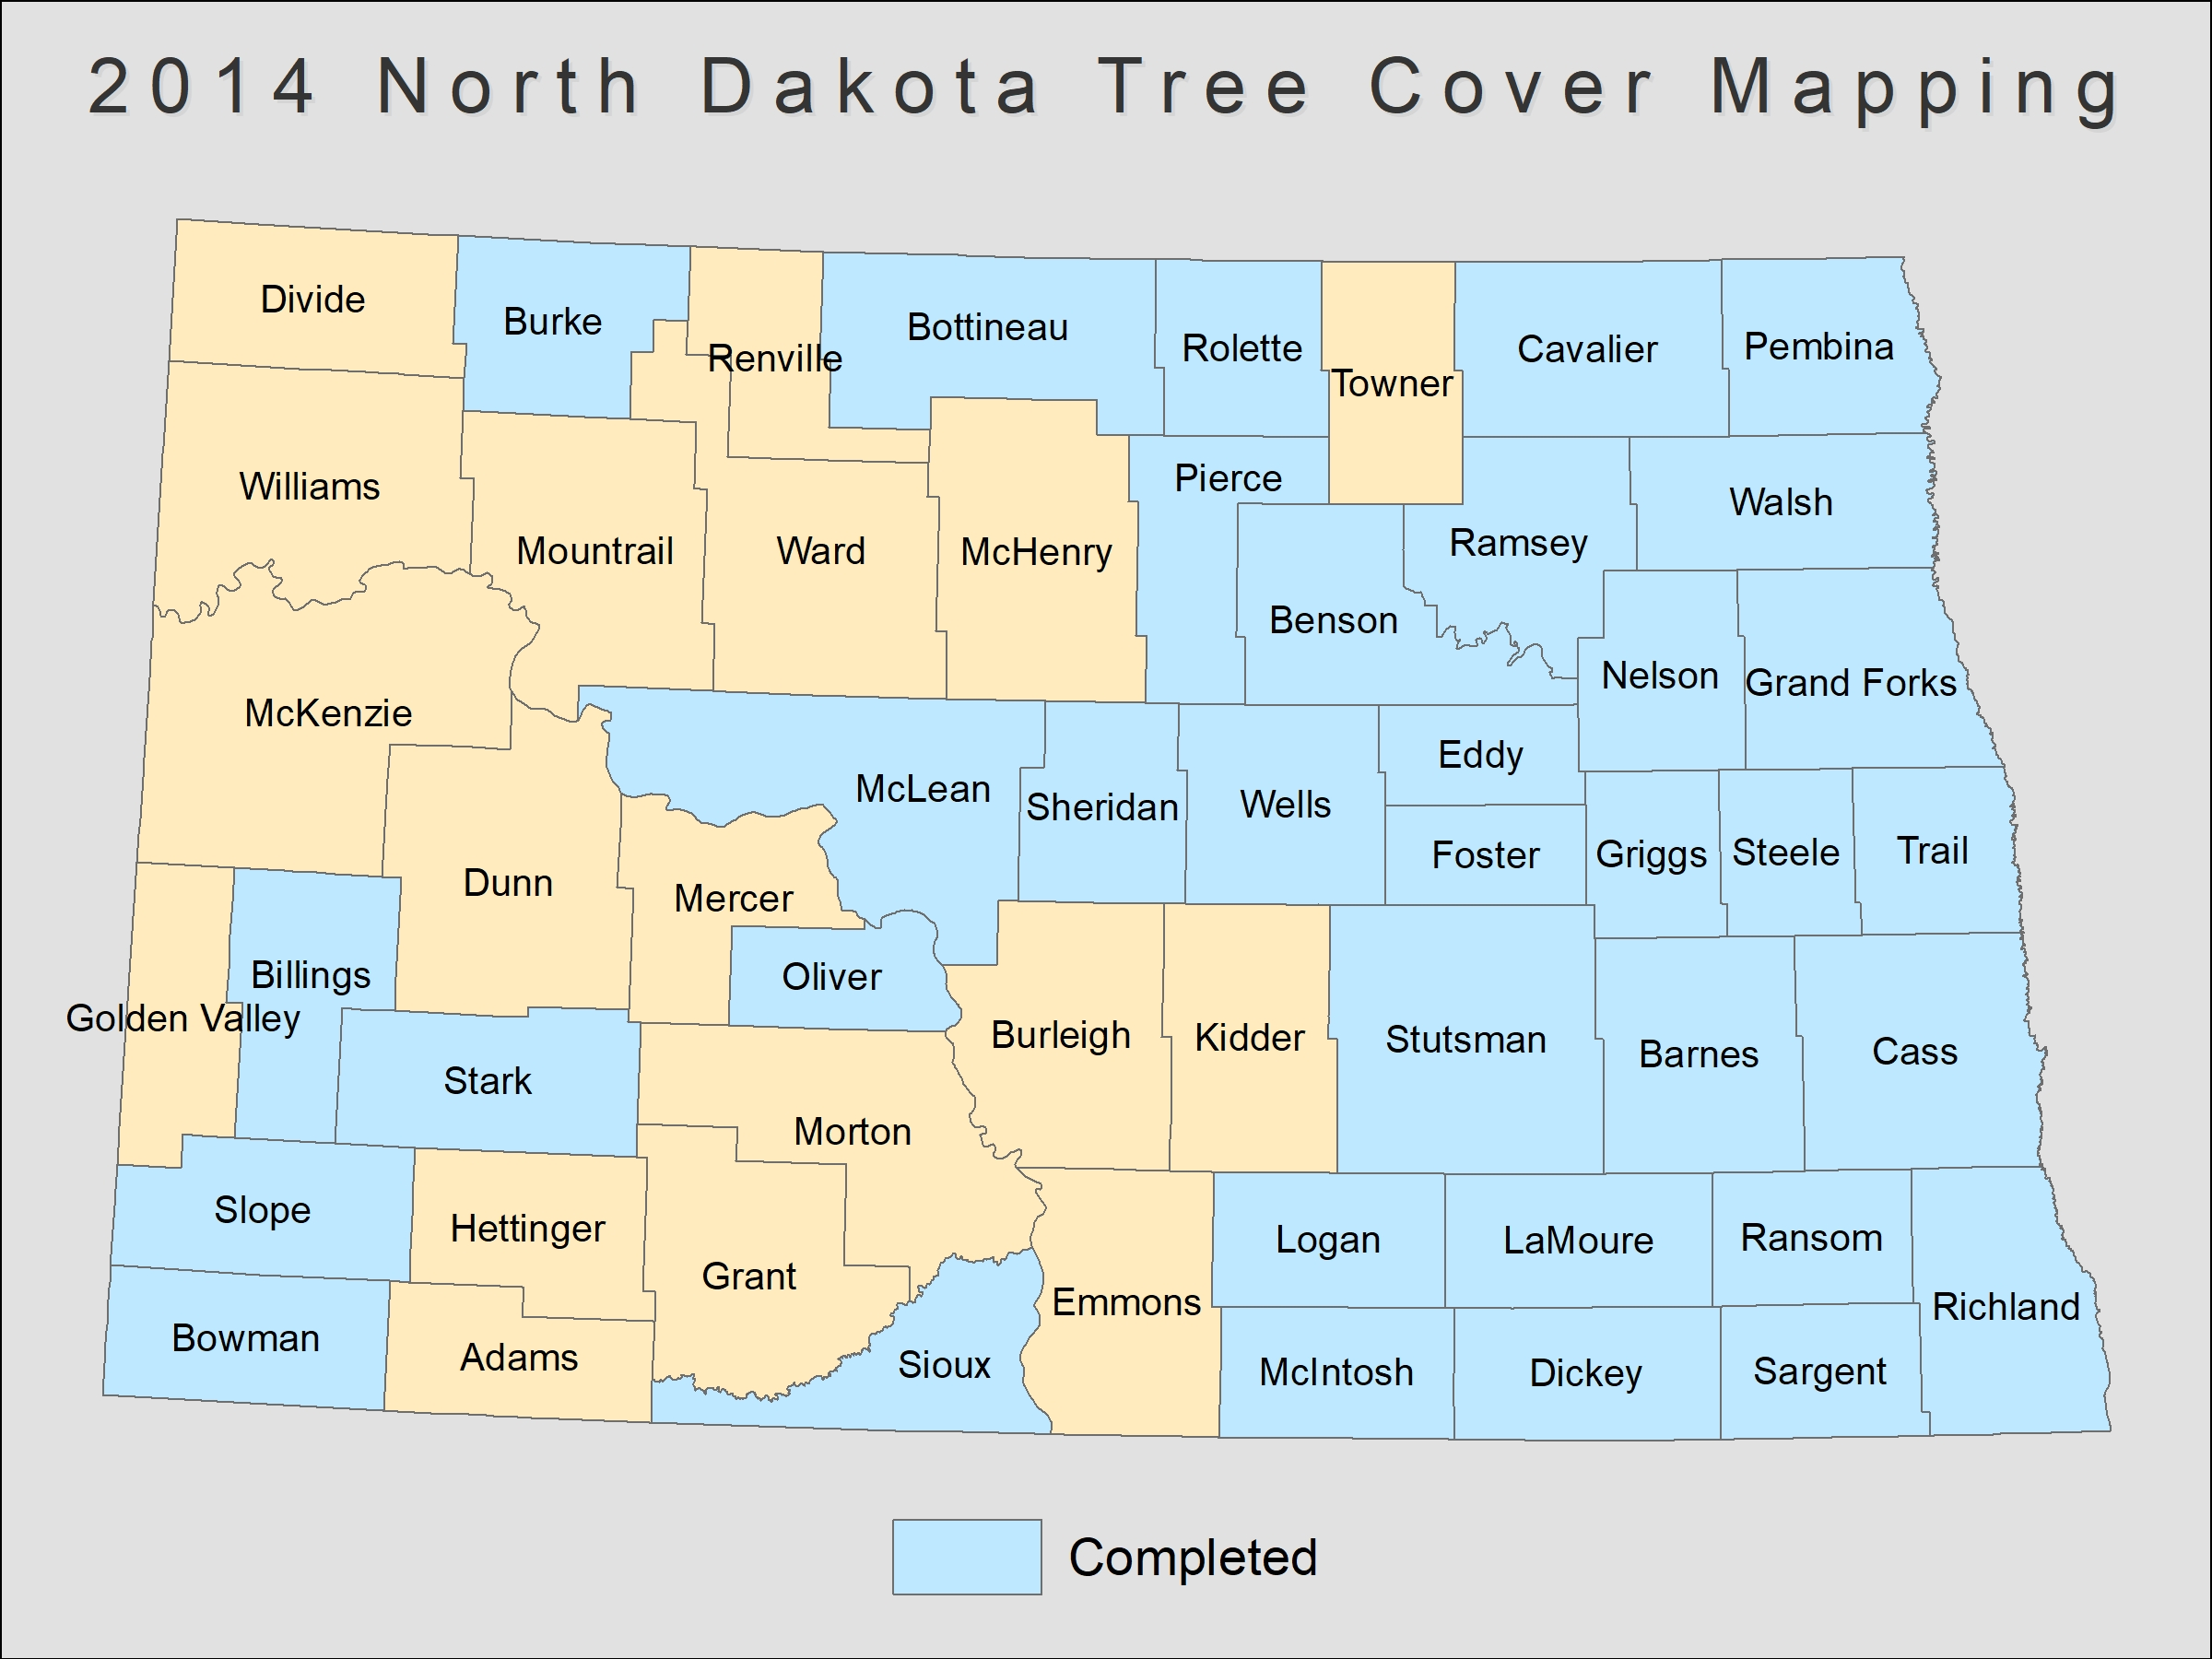 [image:] Status map of tree cover mapping in North Dakota.